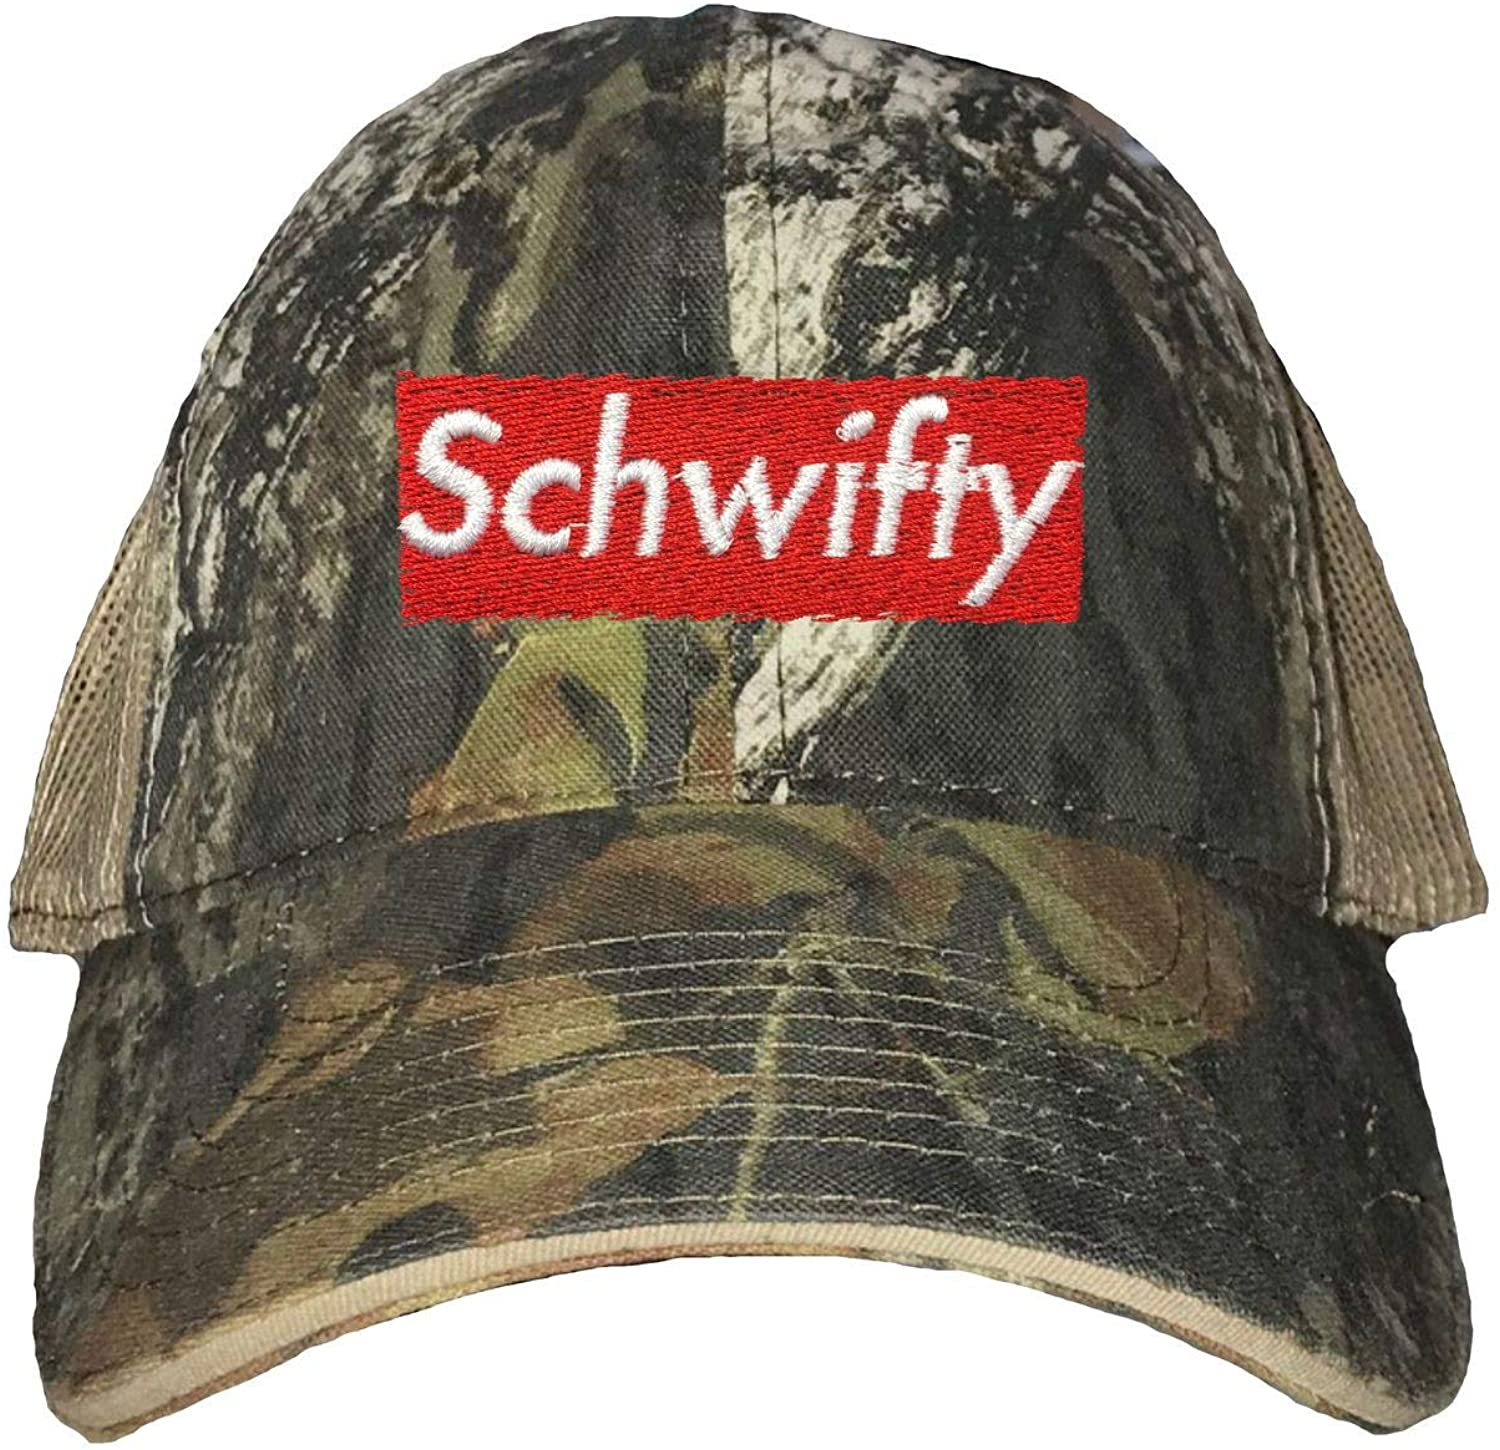 Go All Out Adult Schwifty Embroidered Distressed Trucker Cap